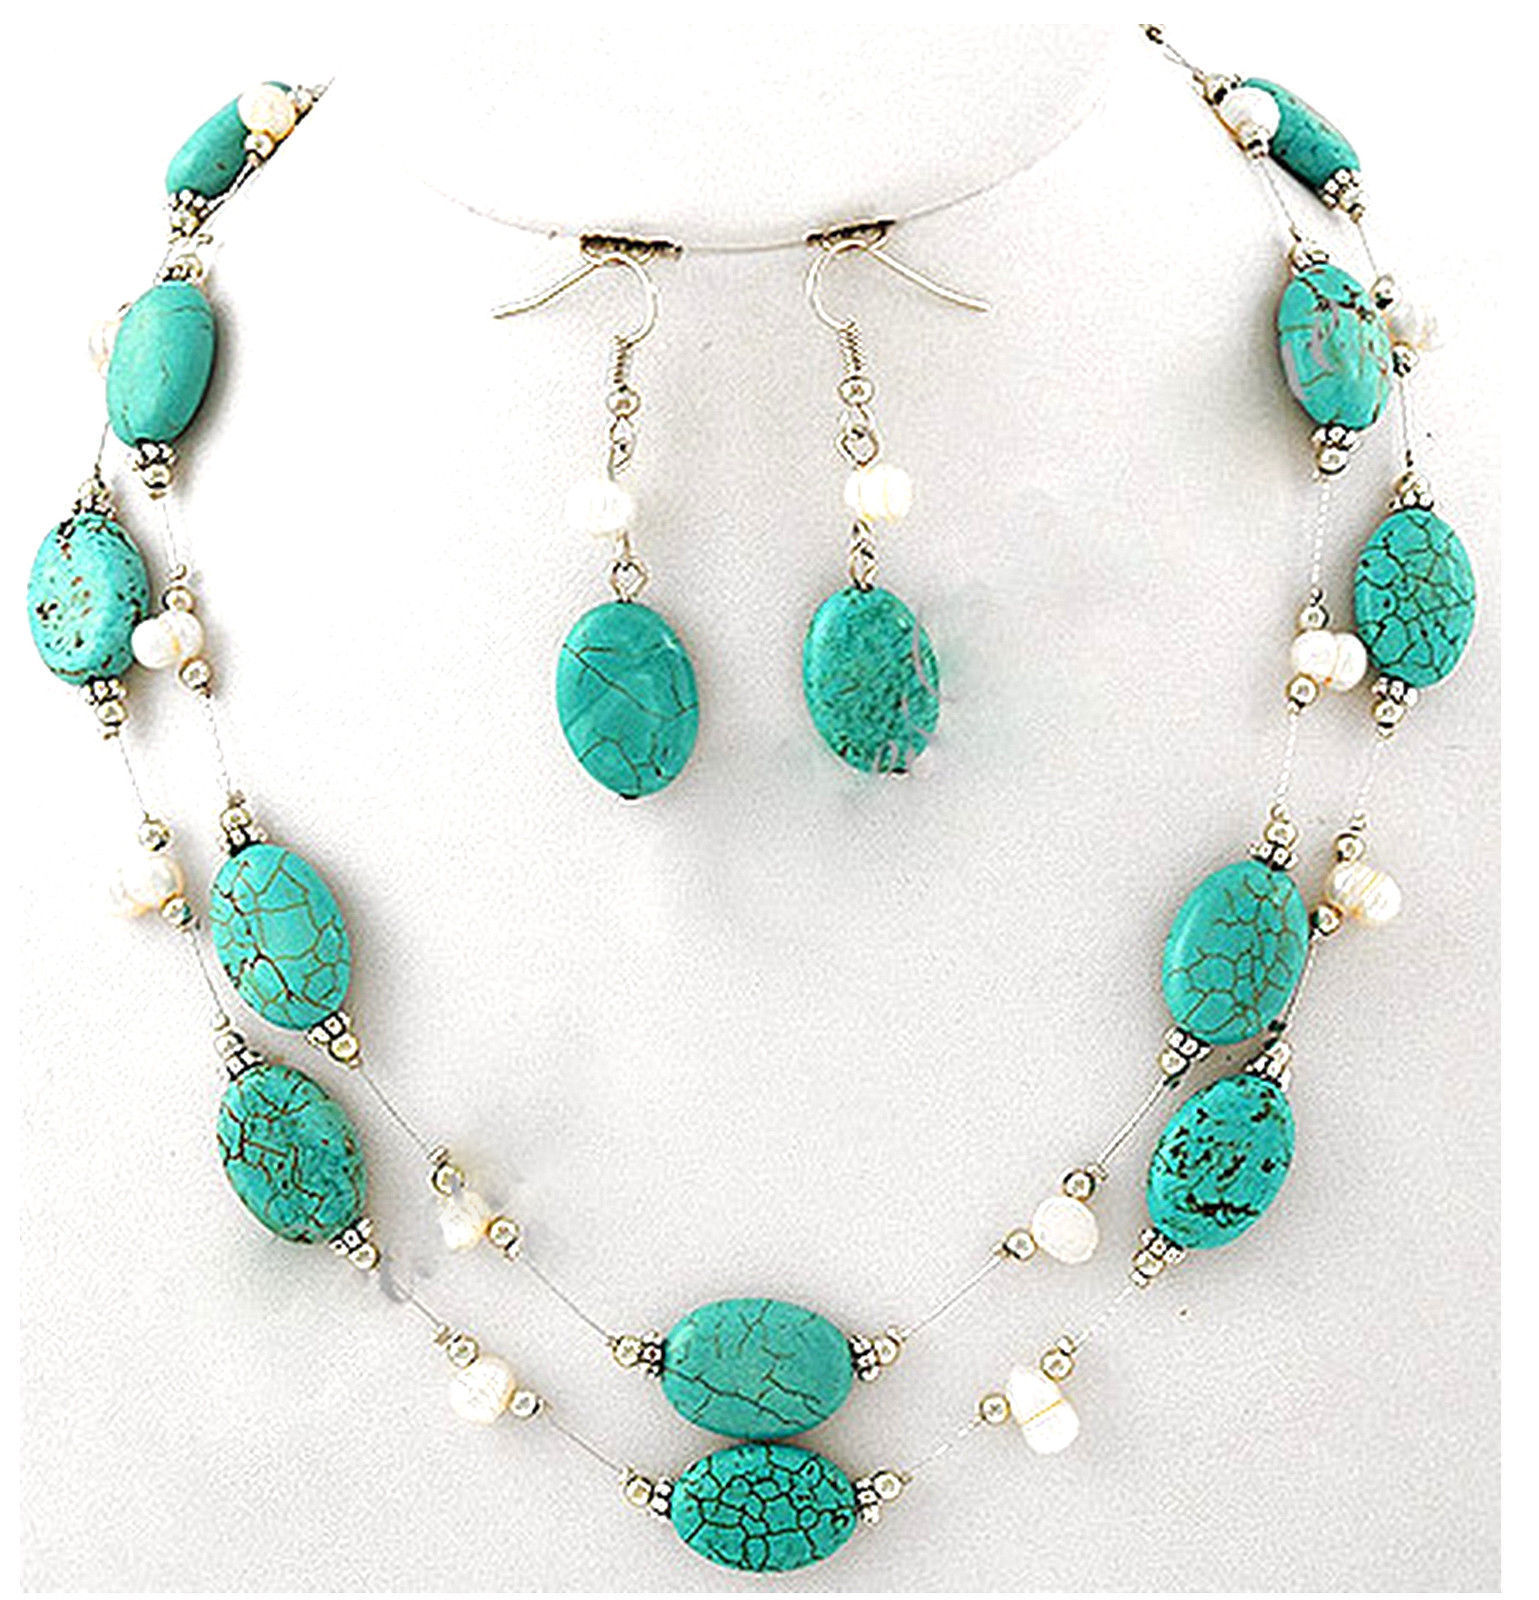 Womens Fresh Water Pearl Turquoise Stone Silver Strands Oval Beaded Necklace Set - $9.97